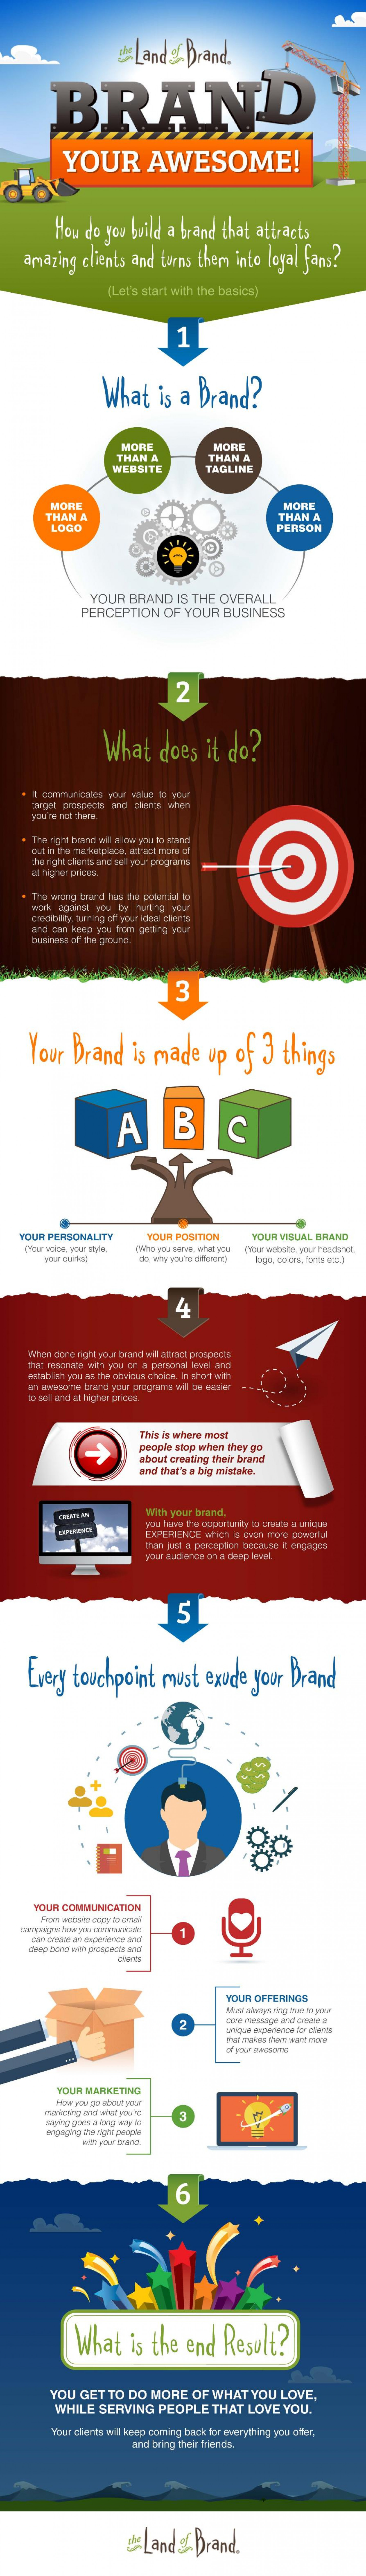 Brand Your Awesome Infographic